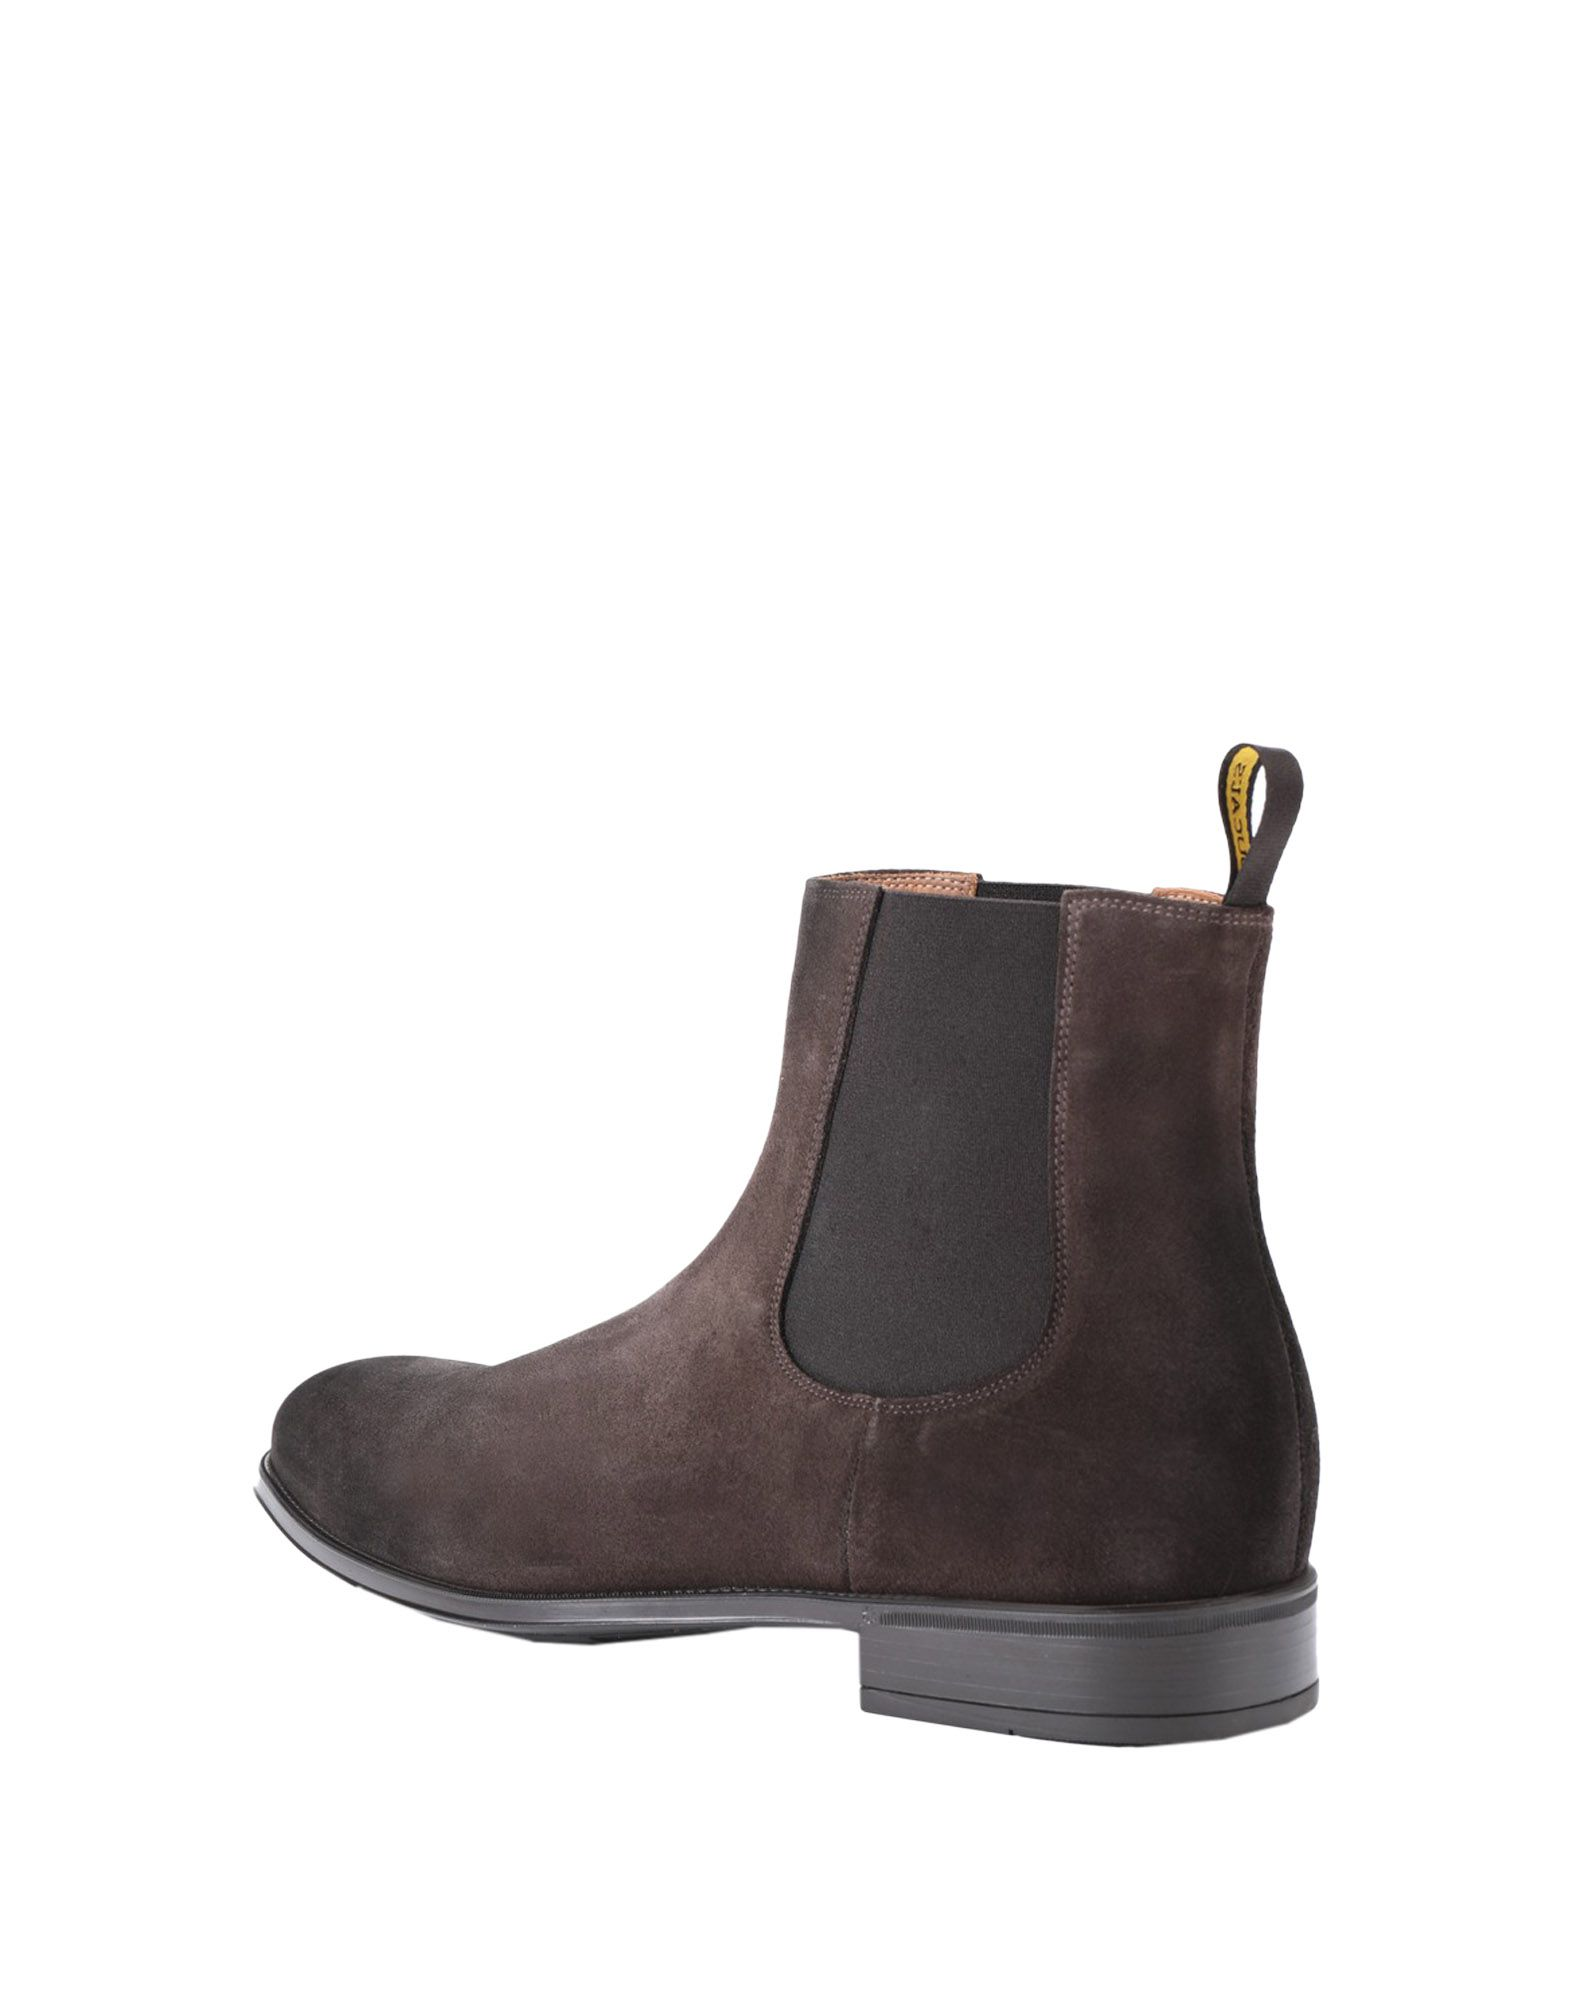 Doucal's Boots - - - Men Doucal's Boots online on  Australia - 11538726CN f00456